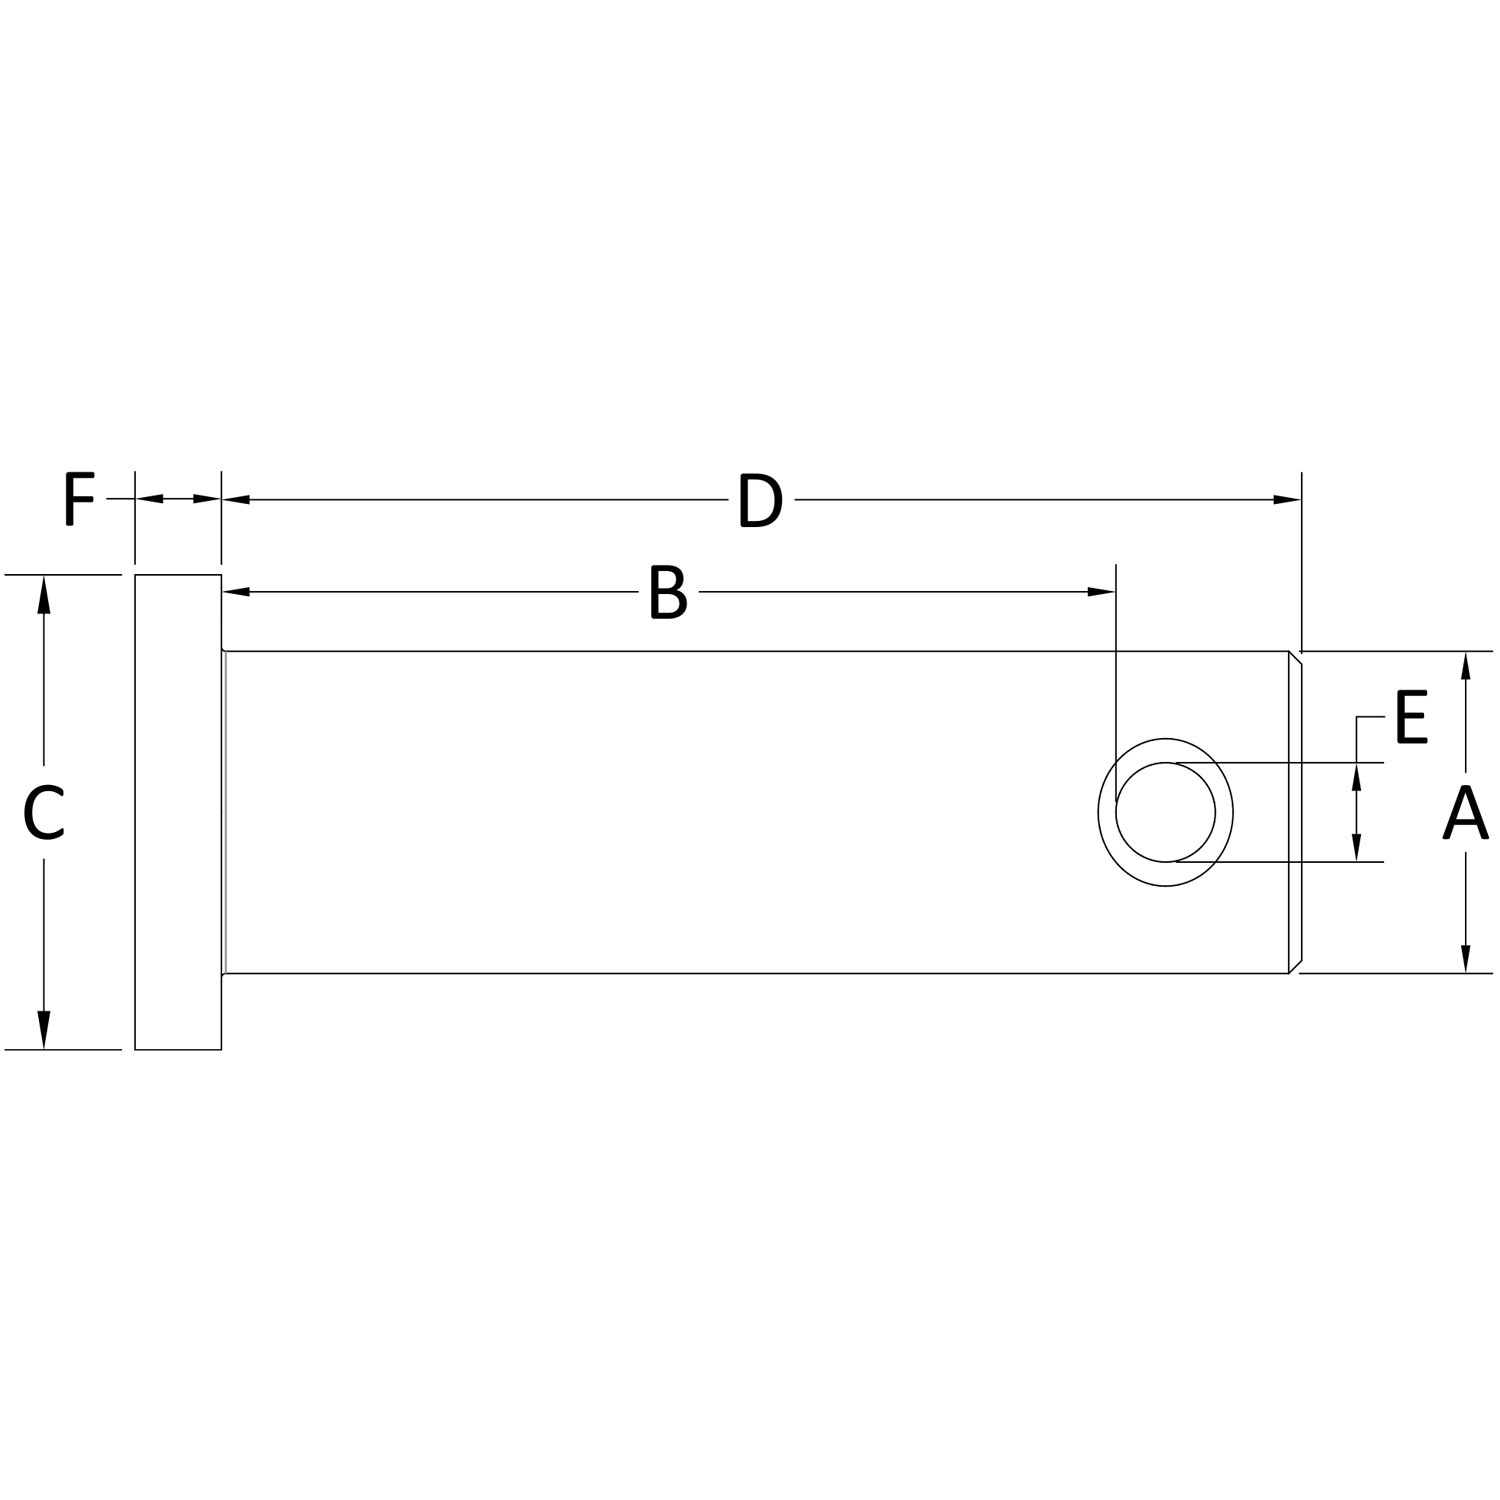 12-x-32-Stainless-Steel-Clevis-Pin-diagram